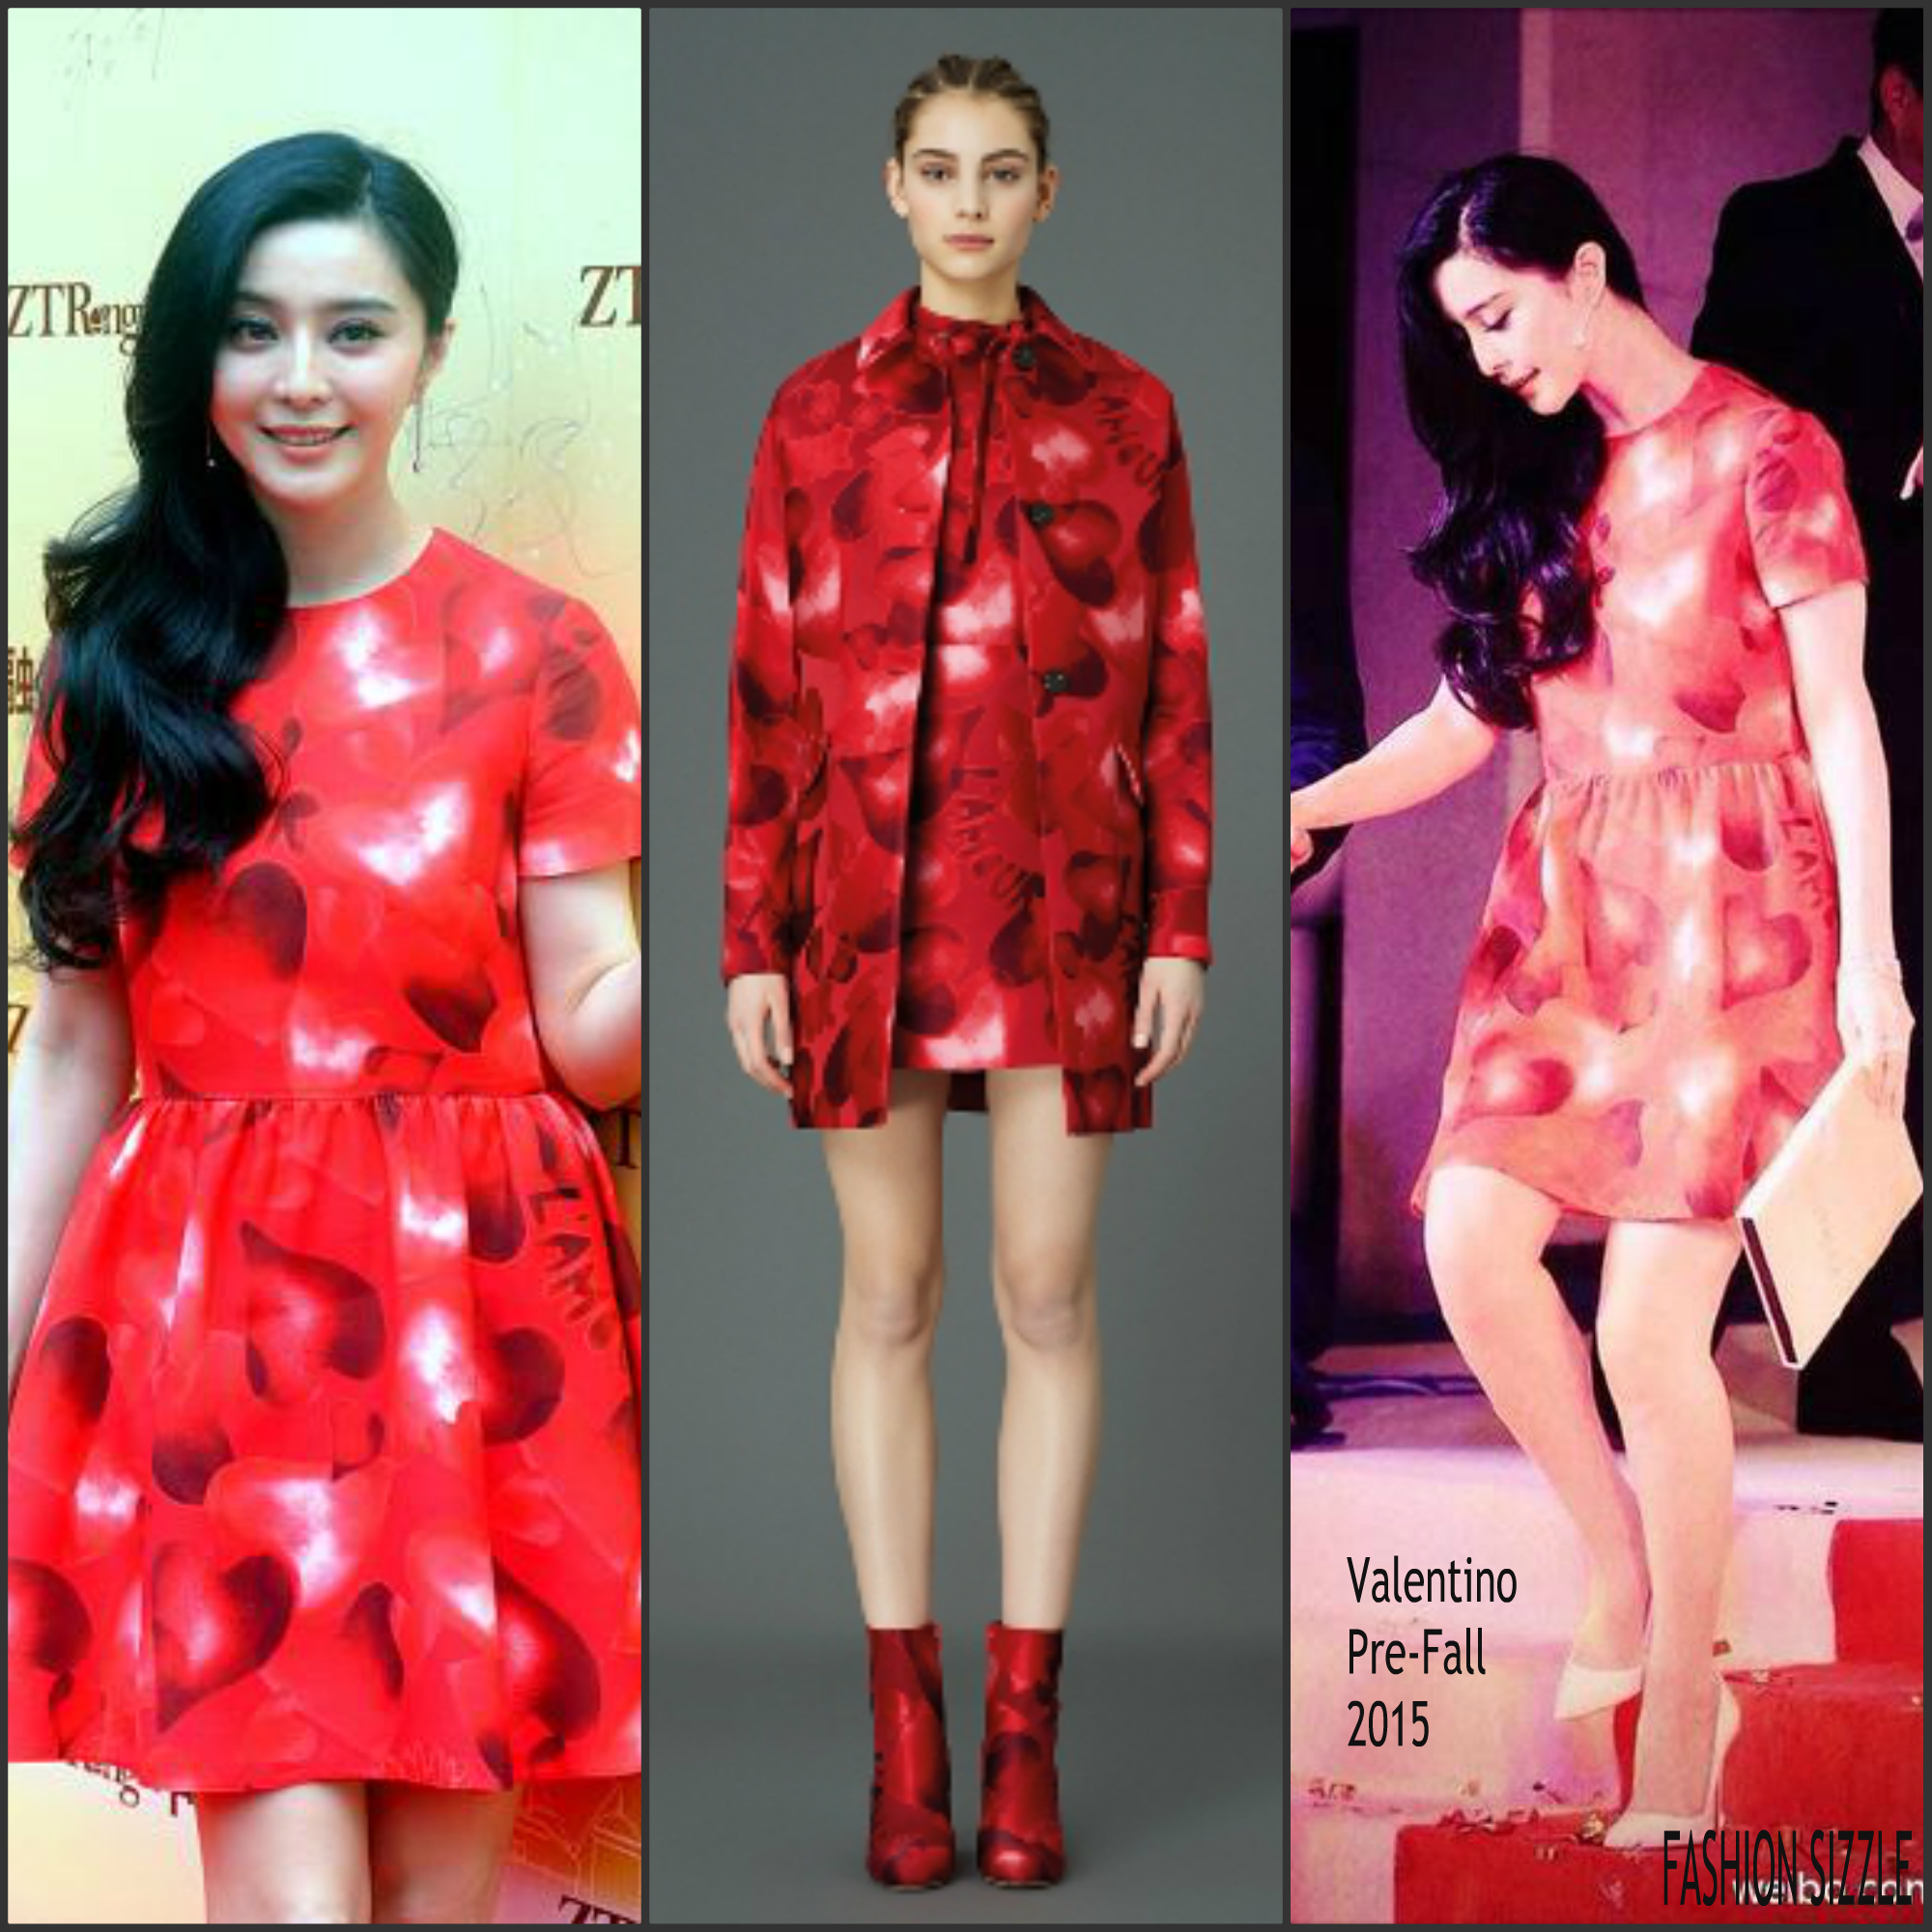 fan-bingbing-valentino-at-the-ztrong-commercial-event